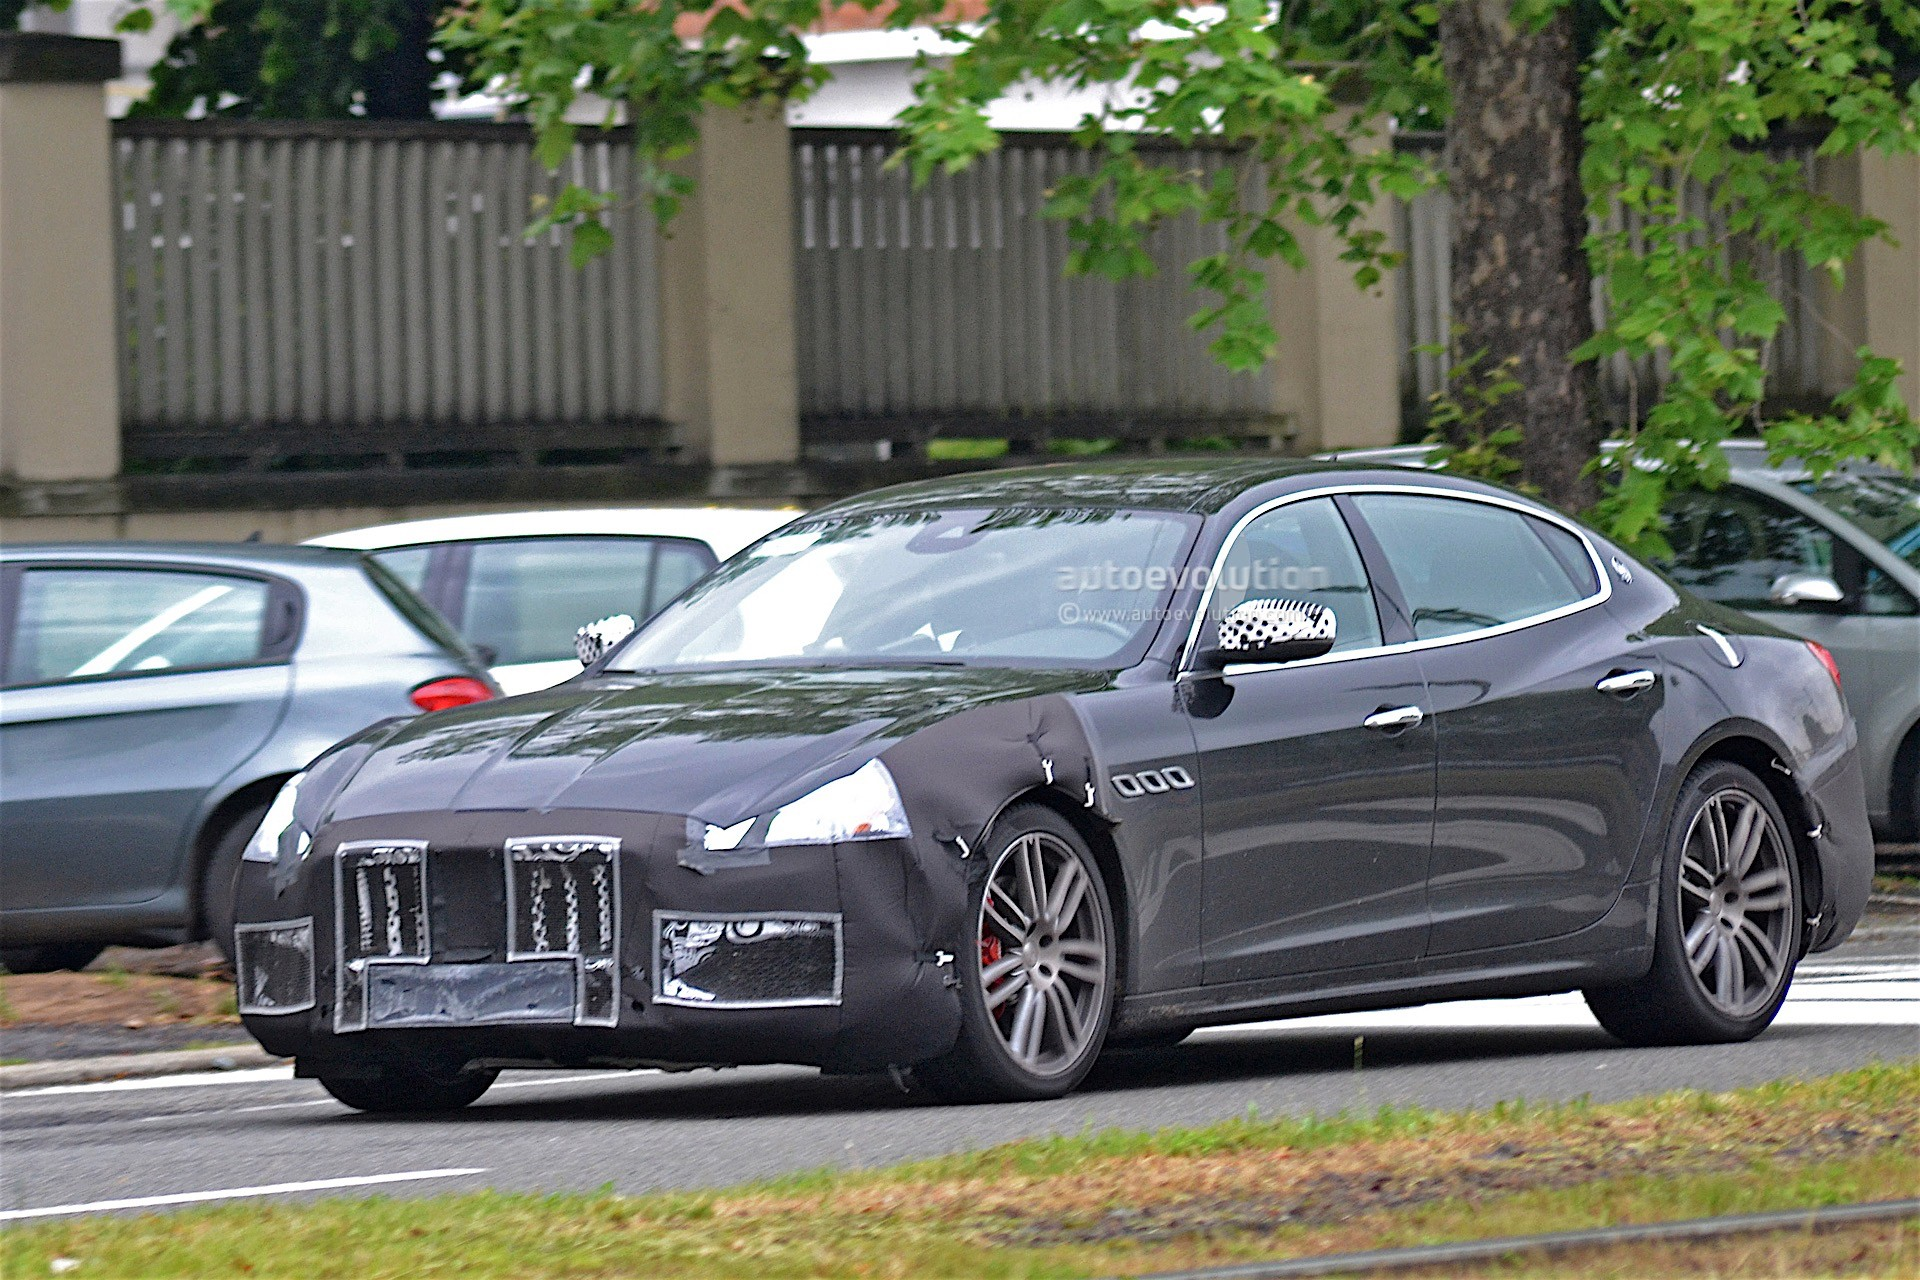 maserati levante car and driver car release date and more on this topic maserati car reviews maserati to debut granturismo